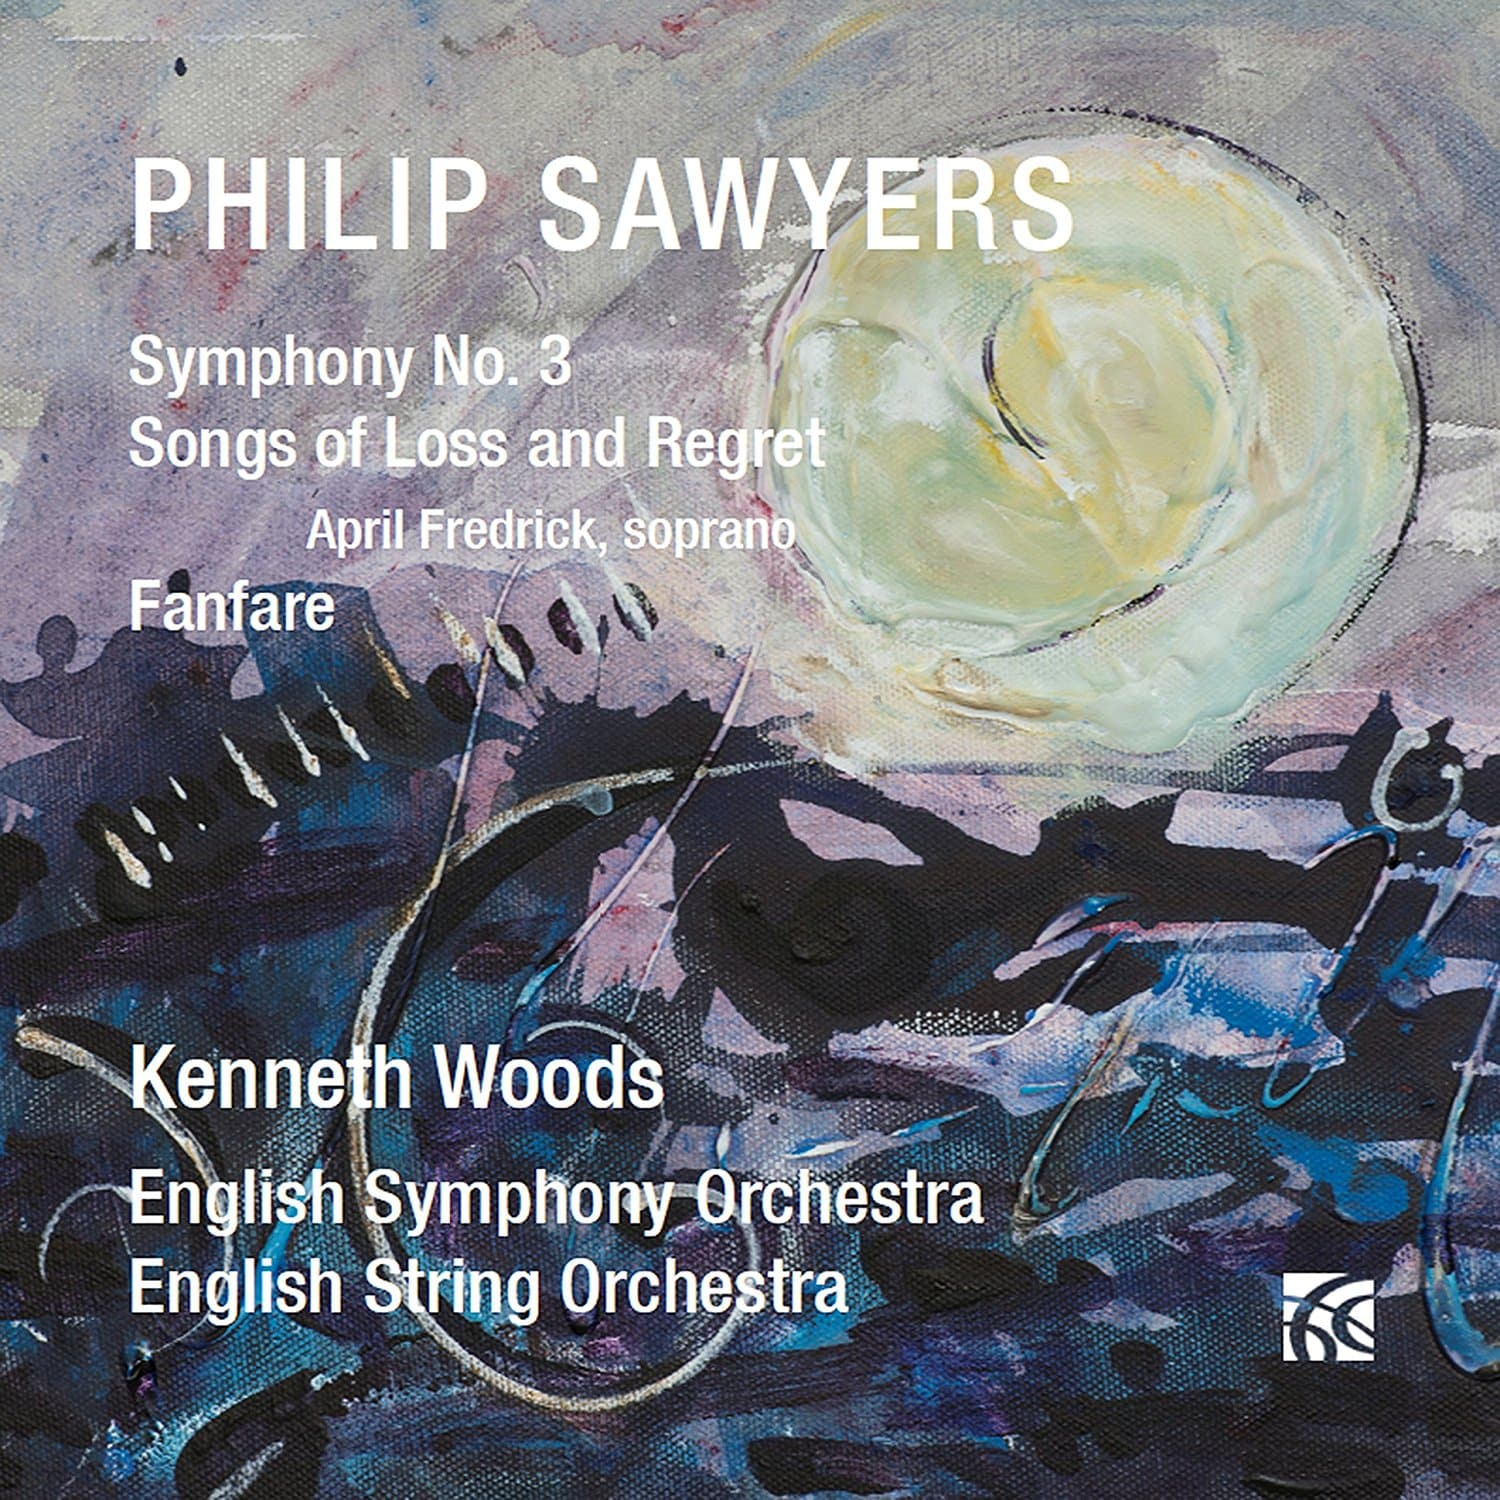 CD Review- Gramophone Magazine on Sawyers- Symphony no. 3, Songs of Loss and Regret, Fanfare